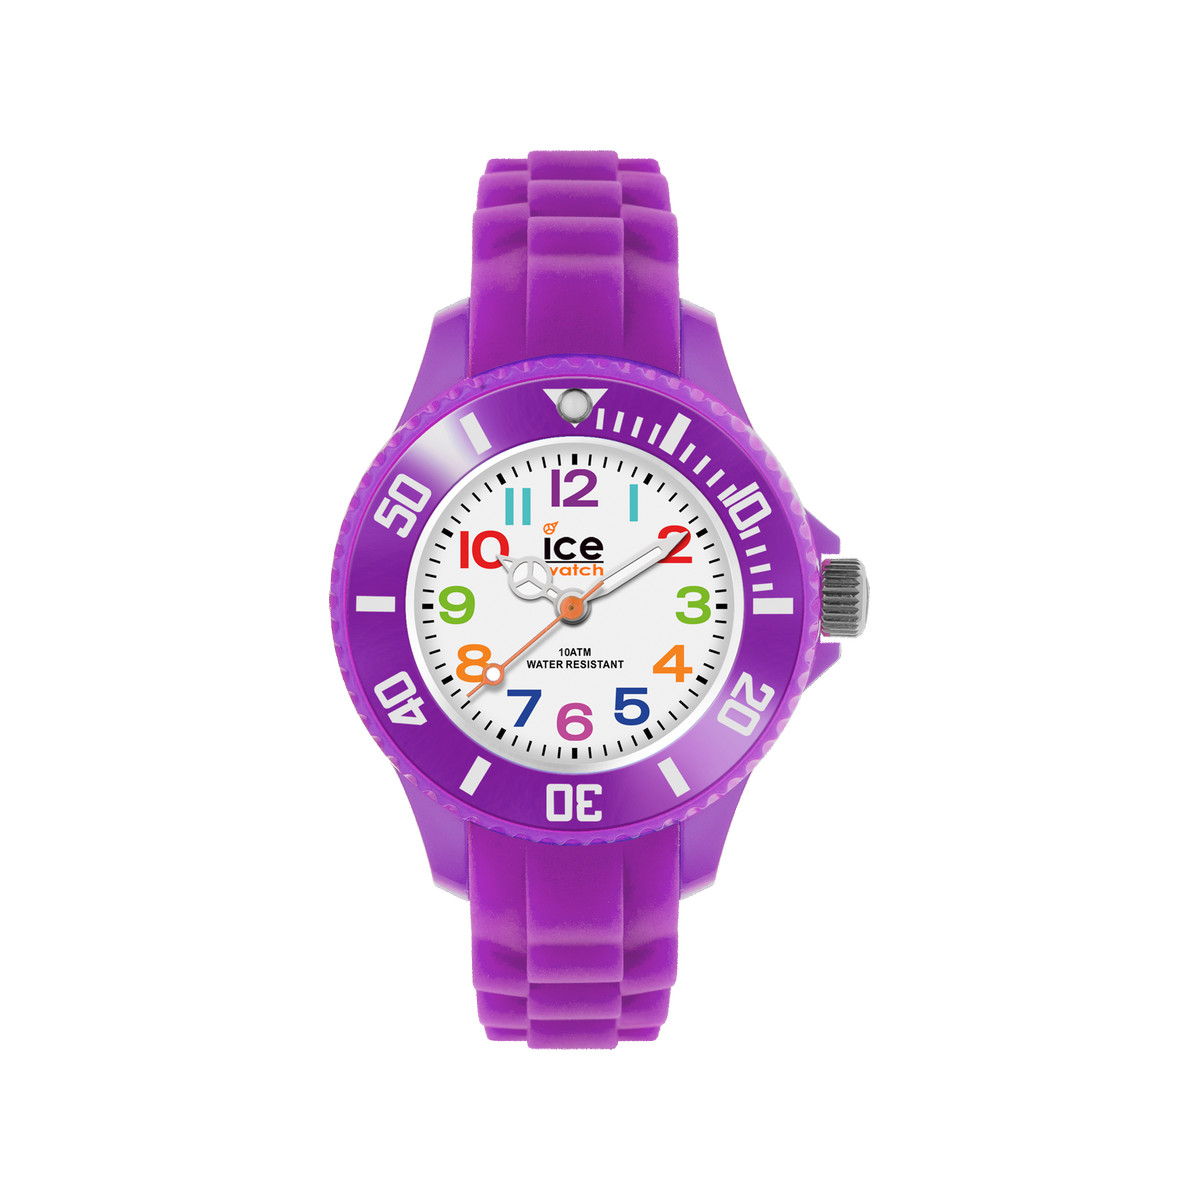 Montre Ice Watch enfant silicone violet